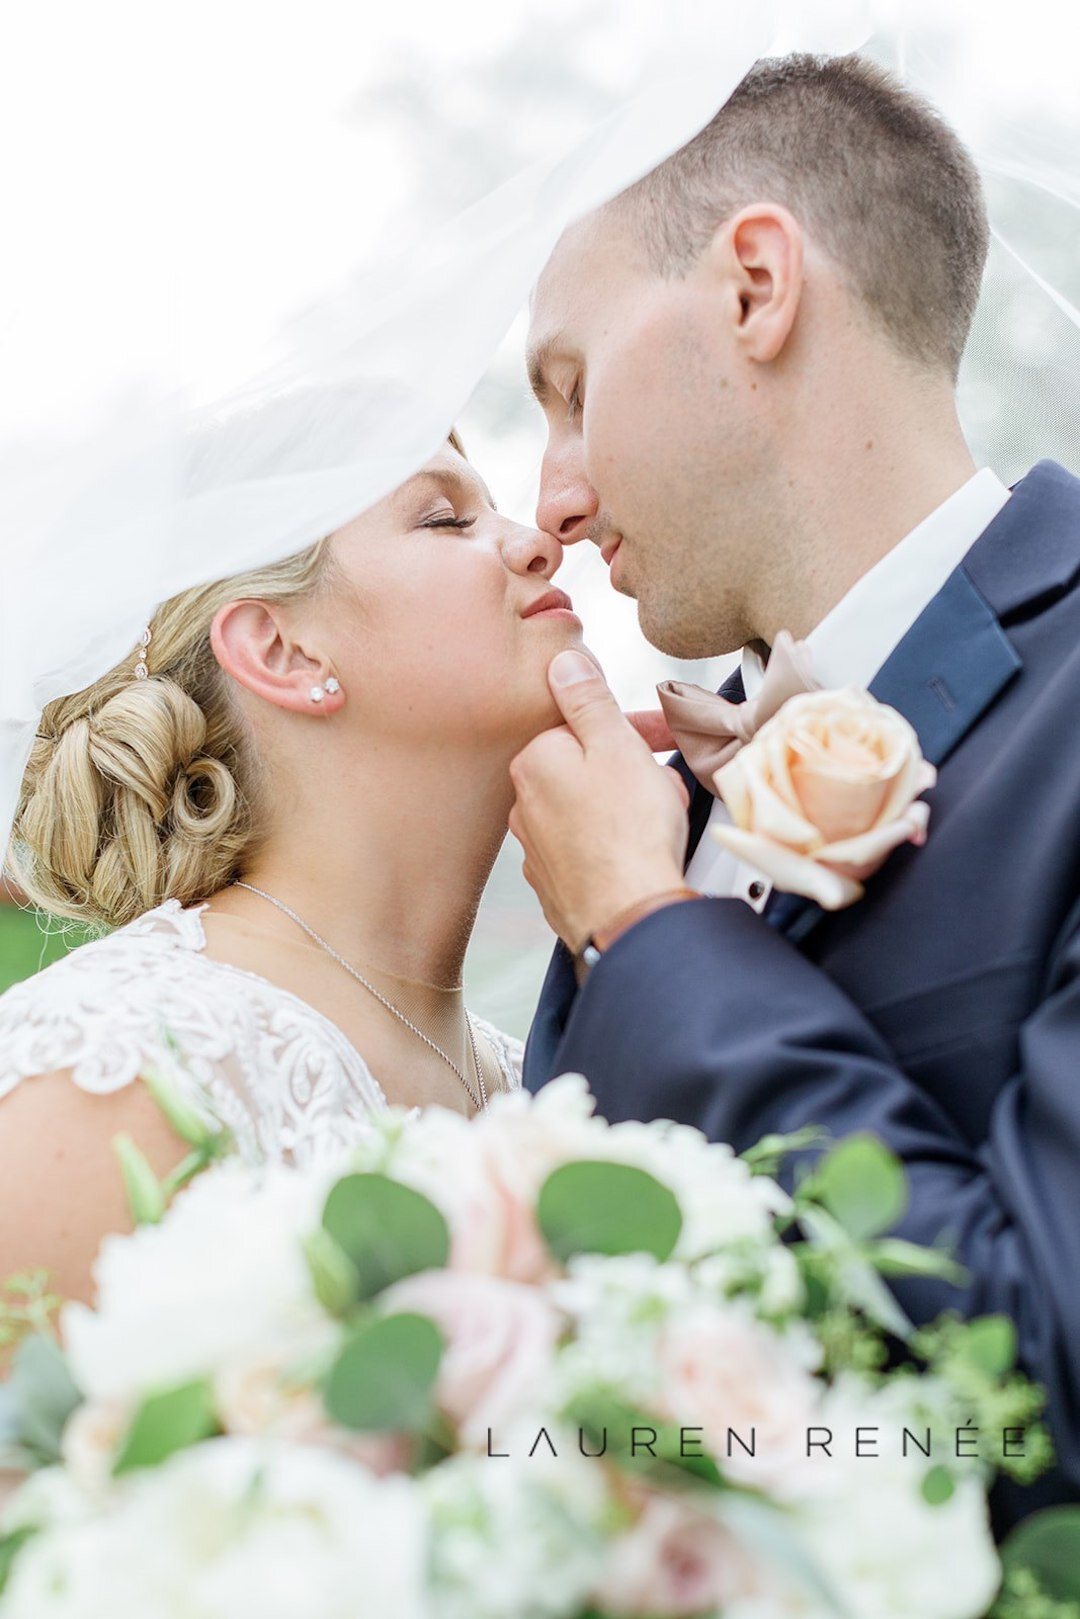 Romantic wedding photo of bride and groom: Romantic Blush Wedding at the Pittsburgh Field Club planned by Exhale Events. See more at exhale-events.com!